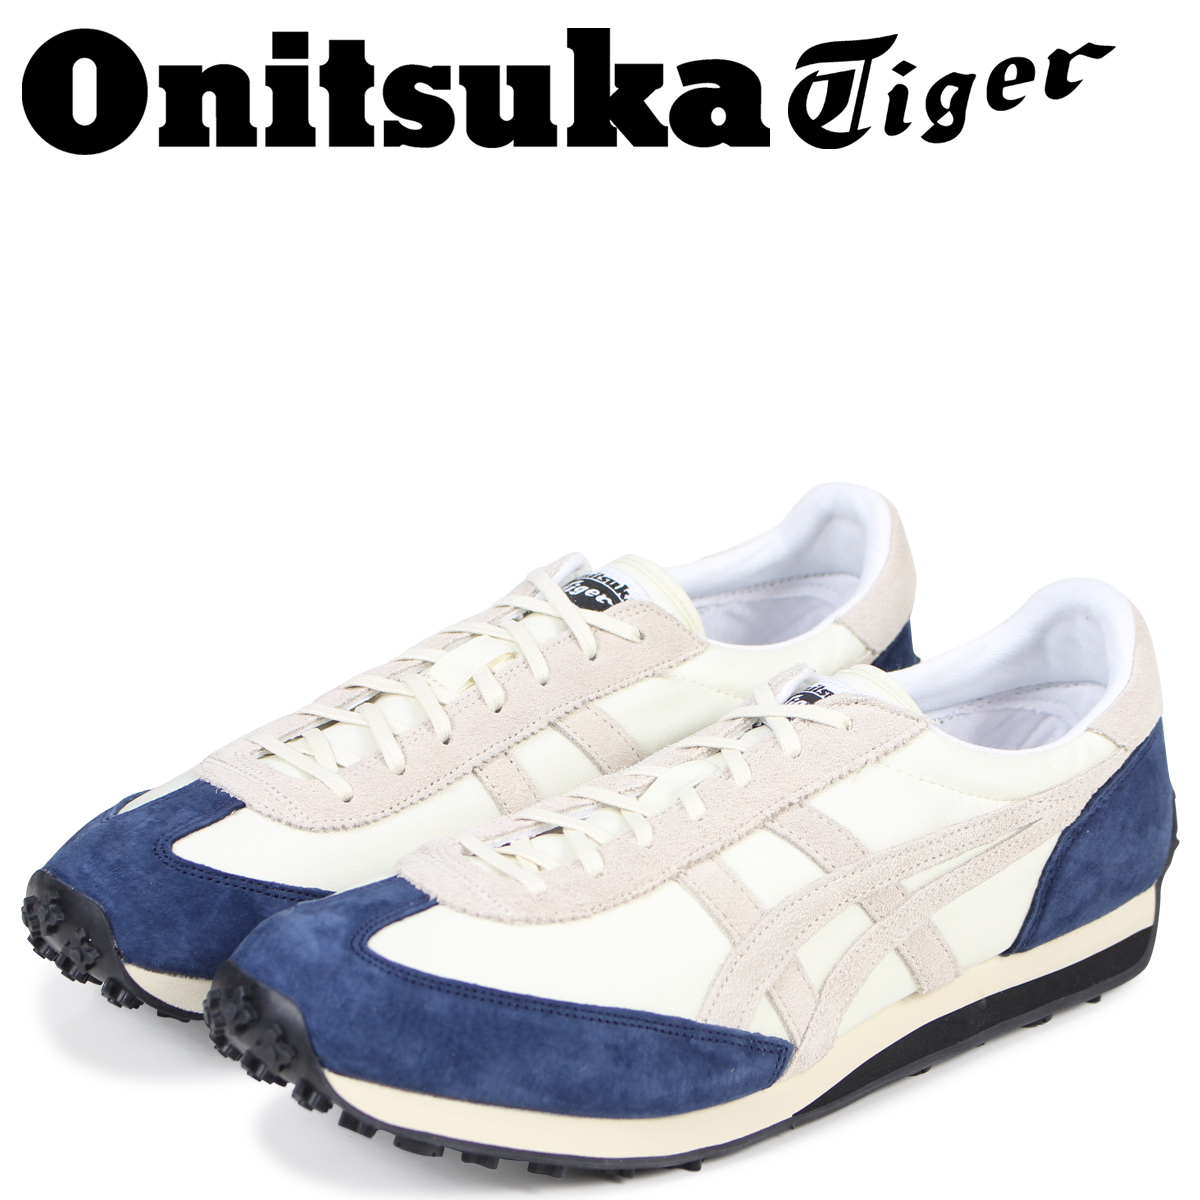 official photos 6c222 78baf Onitsuka Tiger Edy are 78 Onitsuka tiger EDR 78 men's lady's sneakers  D5R3N-9902 TH5R3N-9902 white white